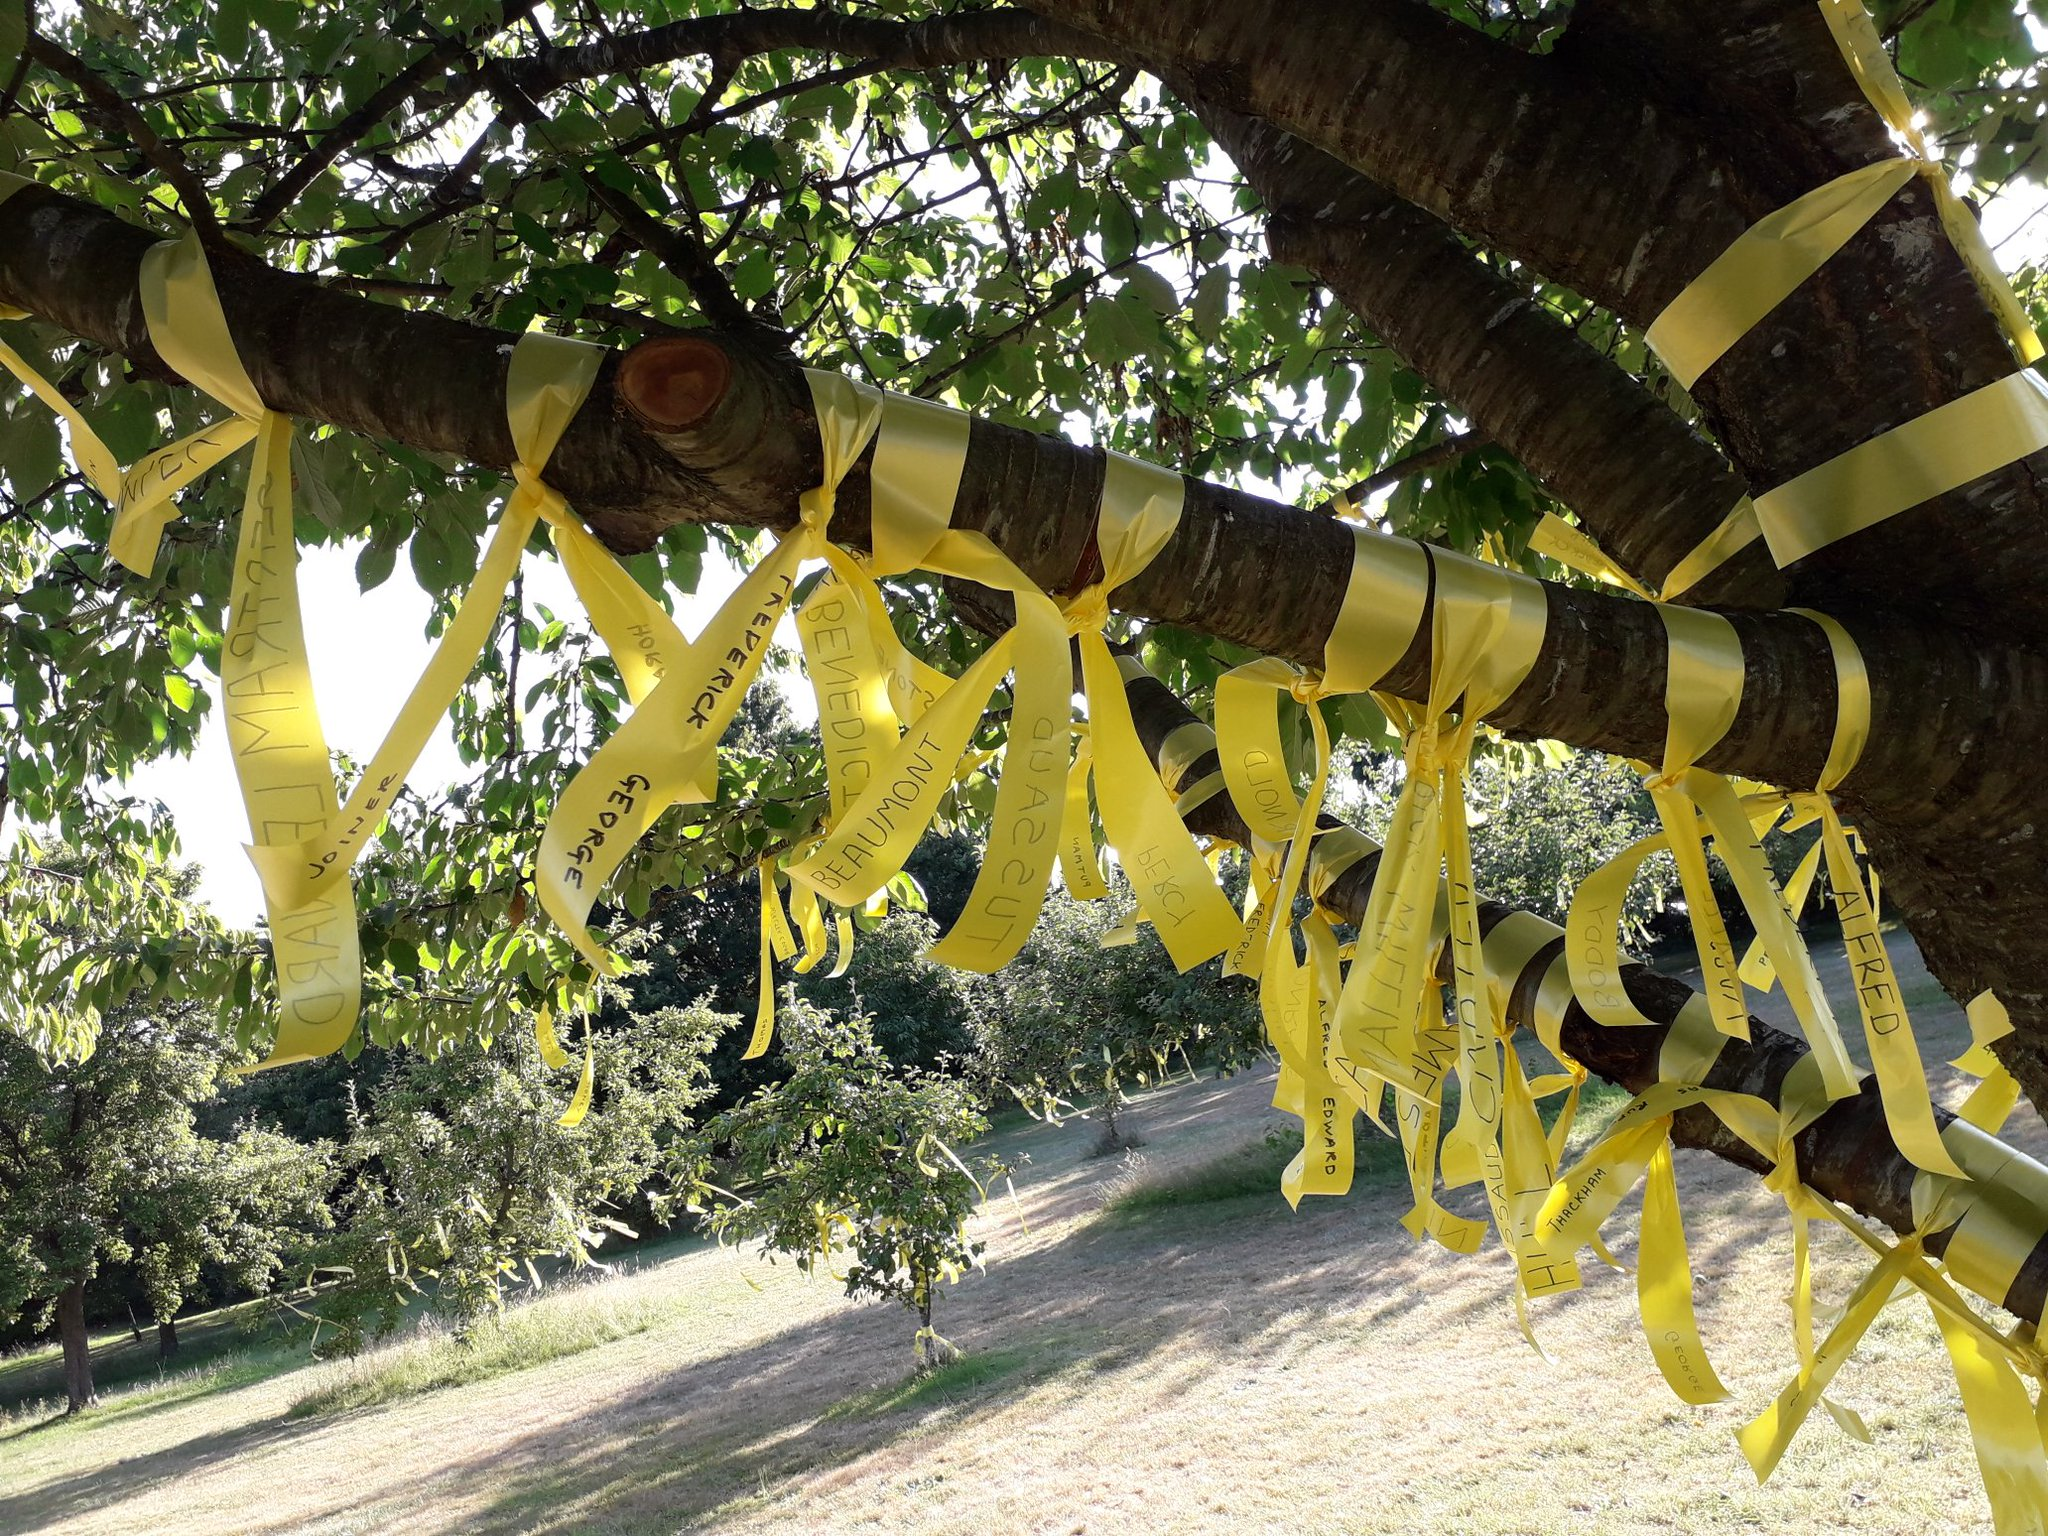 YellowRibbonTree1